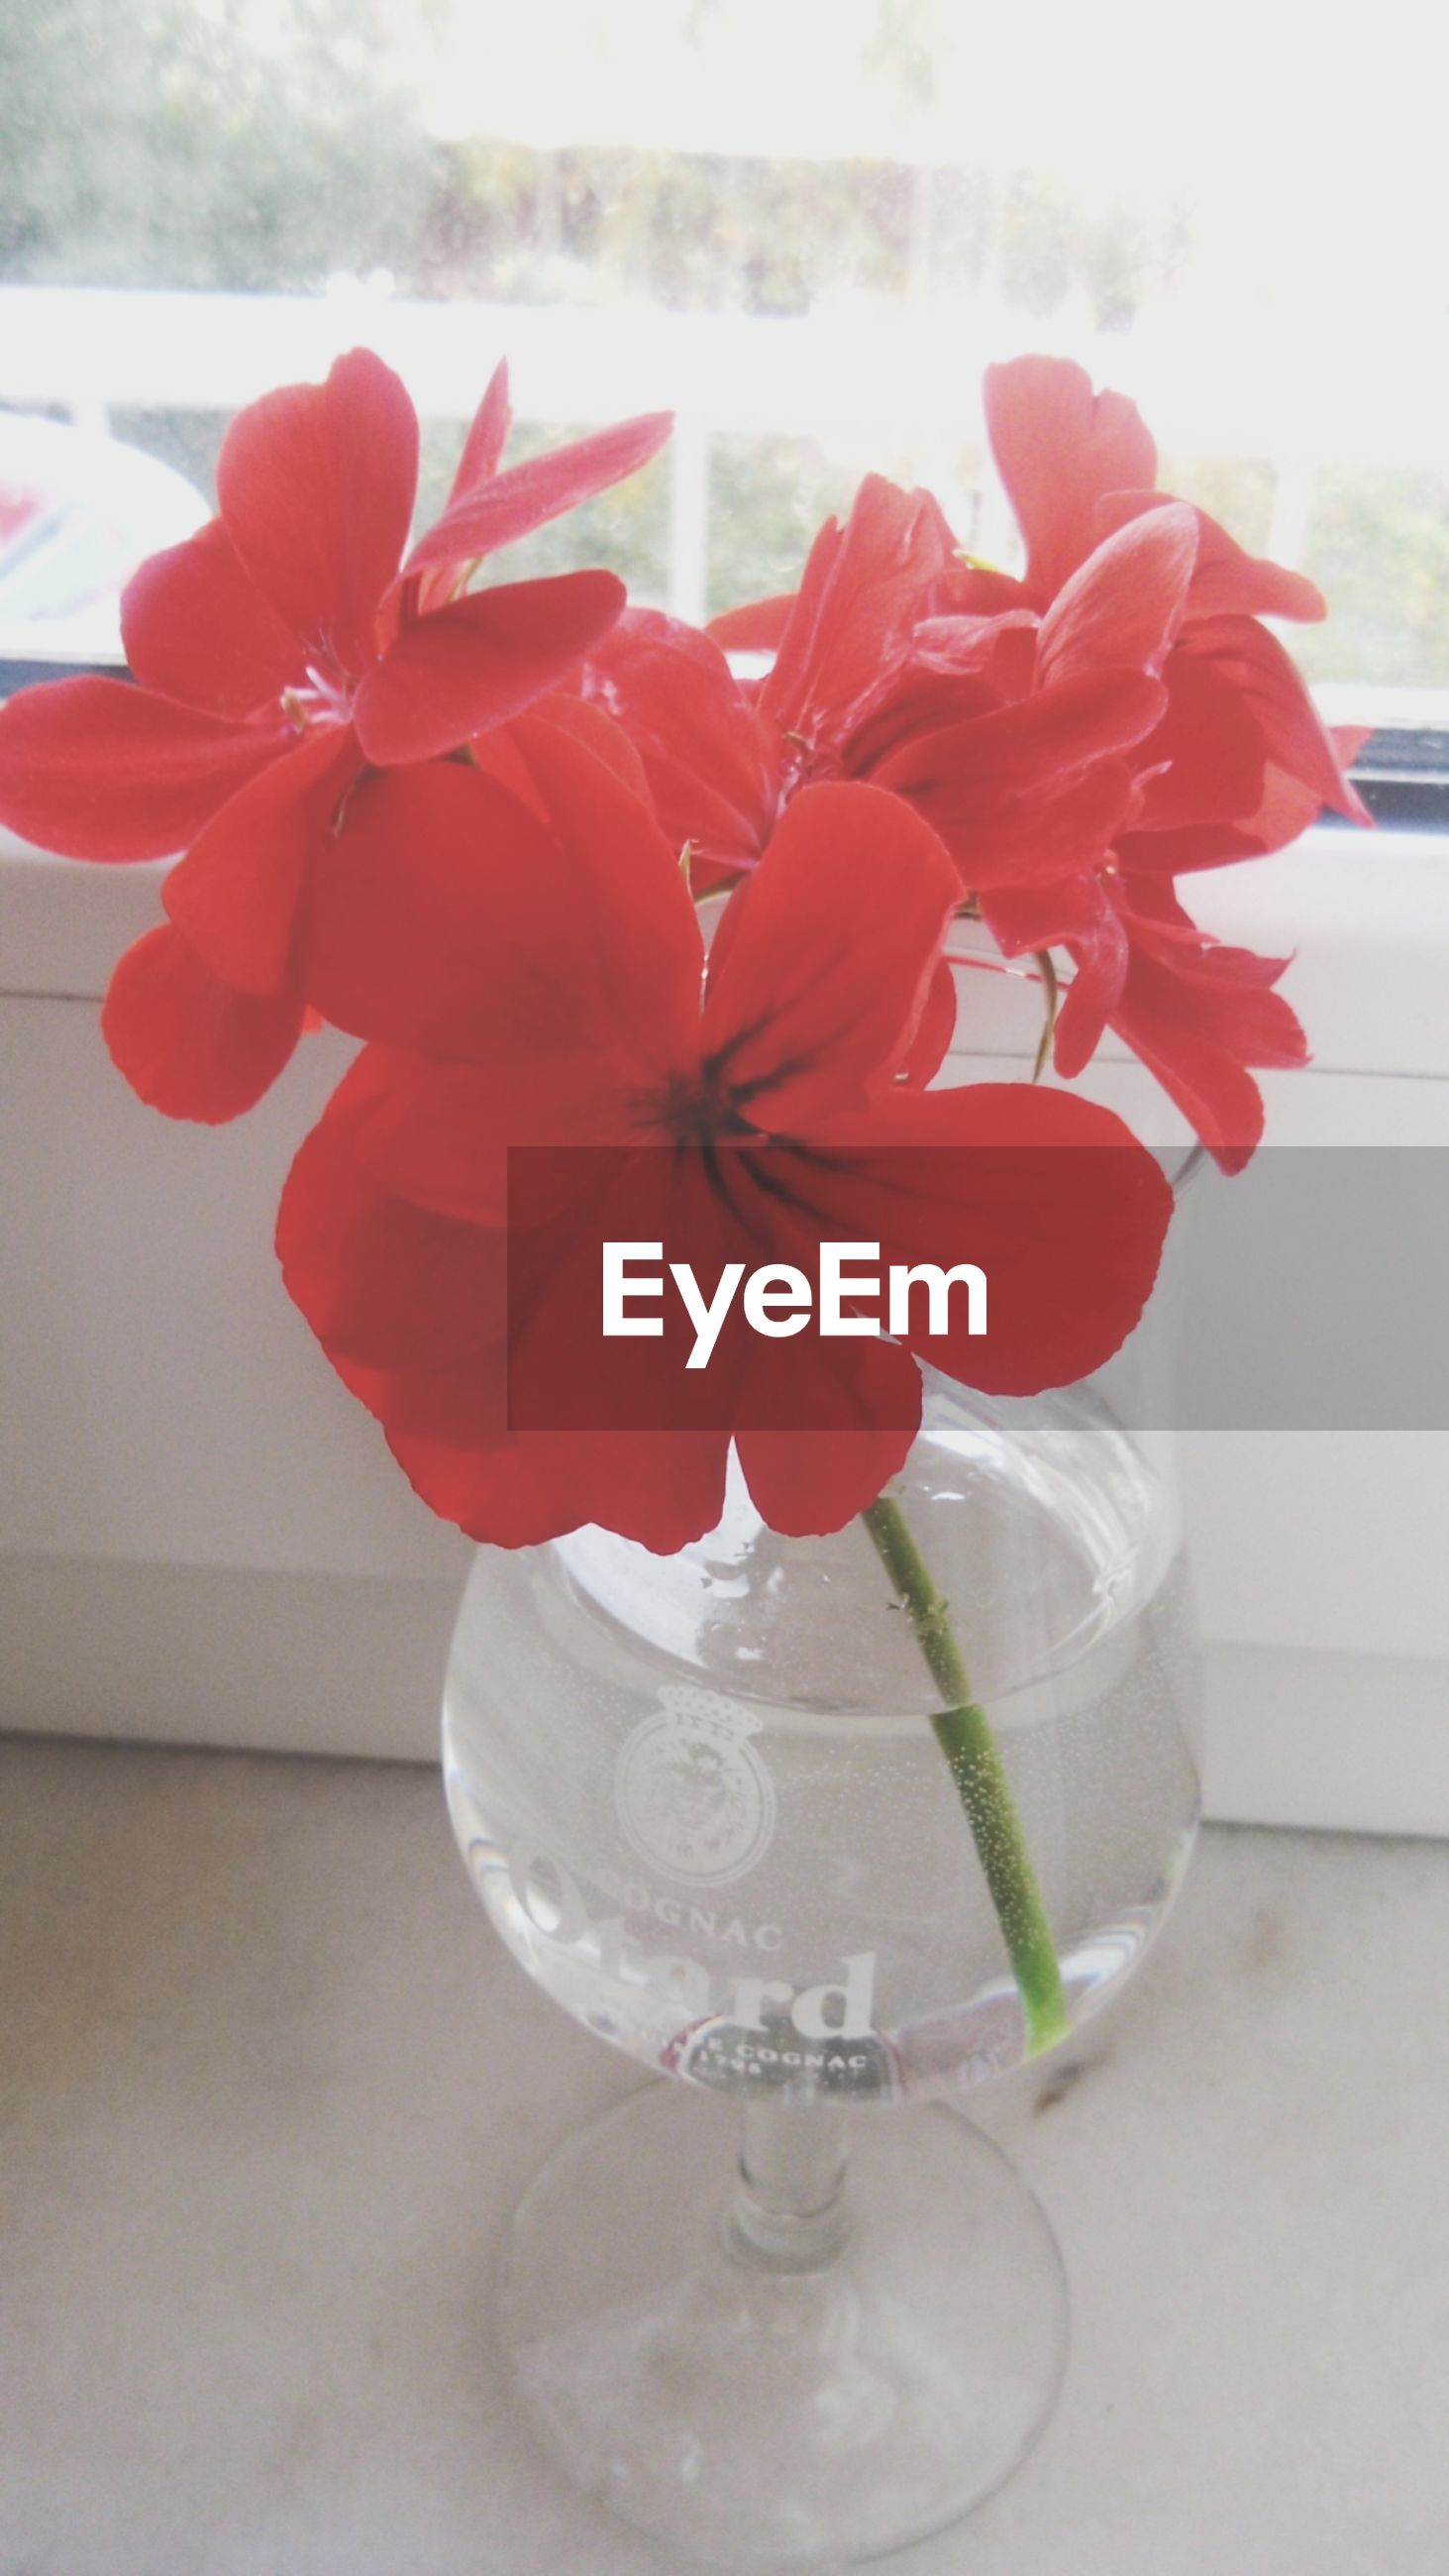 flower, freshness, fragility, petal, vase, flower head, indoors, glass - material, close-up, red, beauty in nature, table, transparent, nature, plant, growth, focus on foreground, water, blooming, pink color